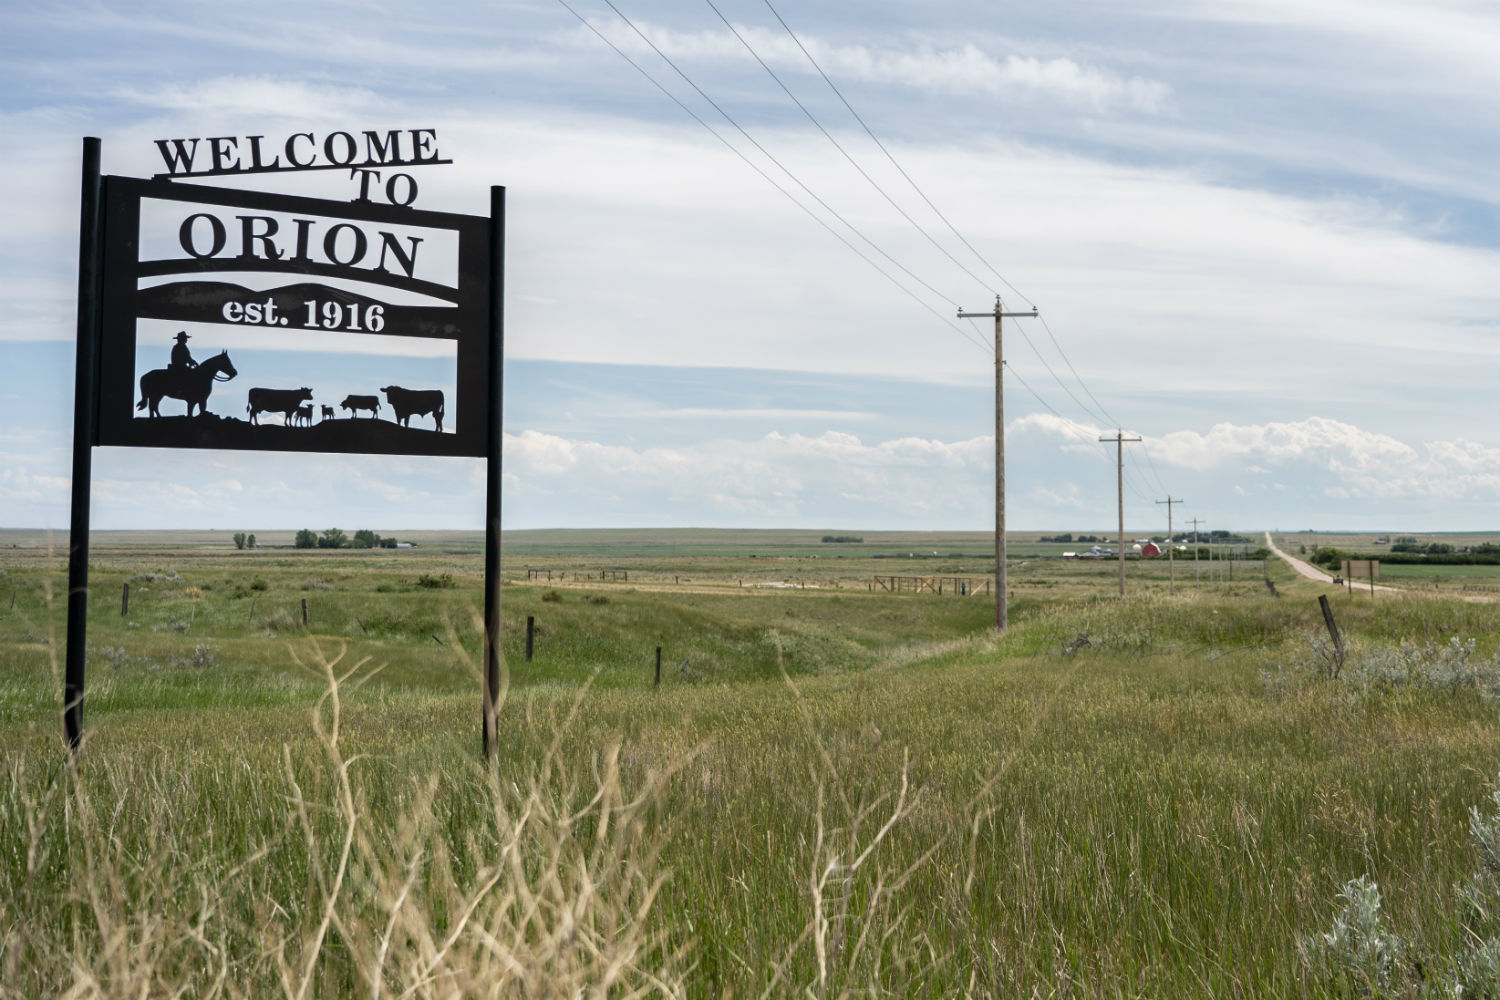 A sign welcomes visitors to Orion, Alta. (Vincent Bonnay/Radio-Canada)